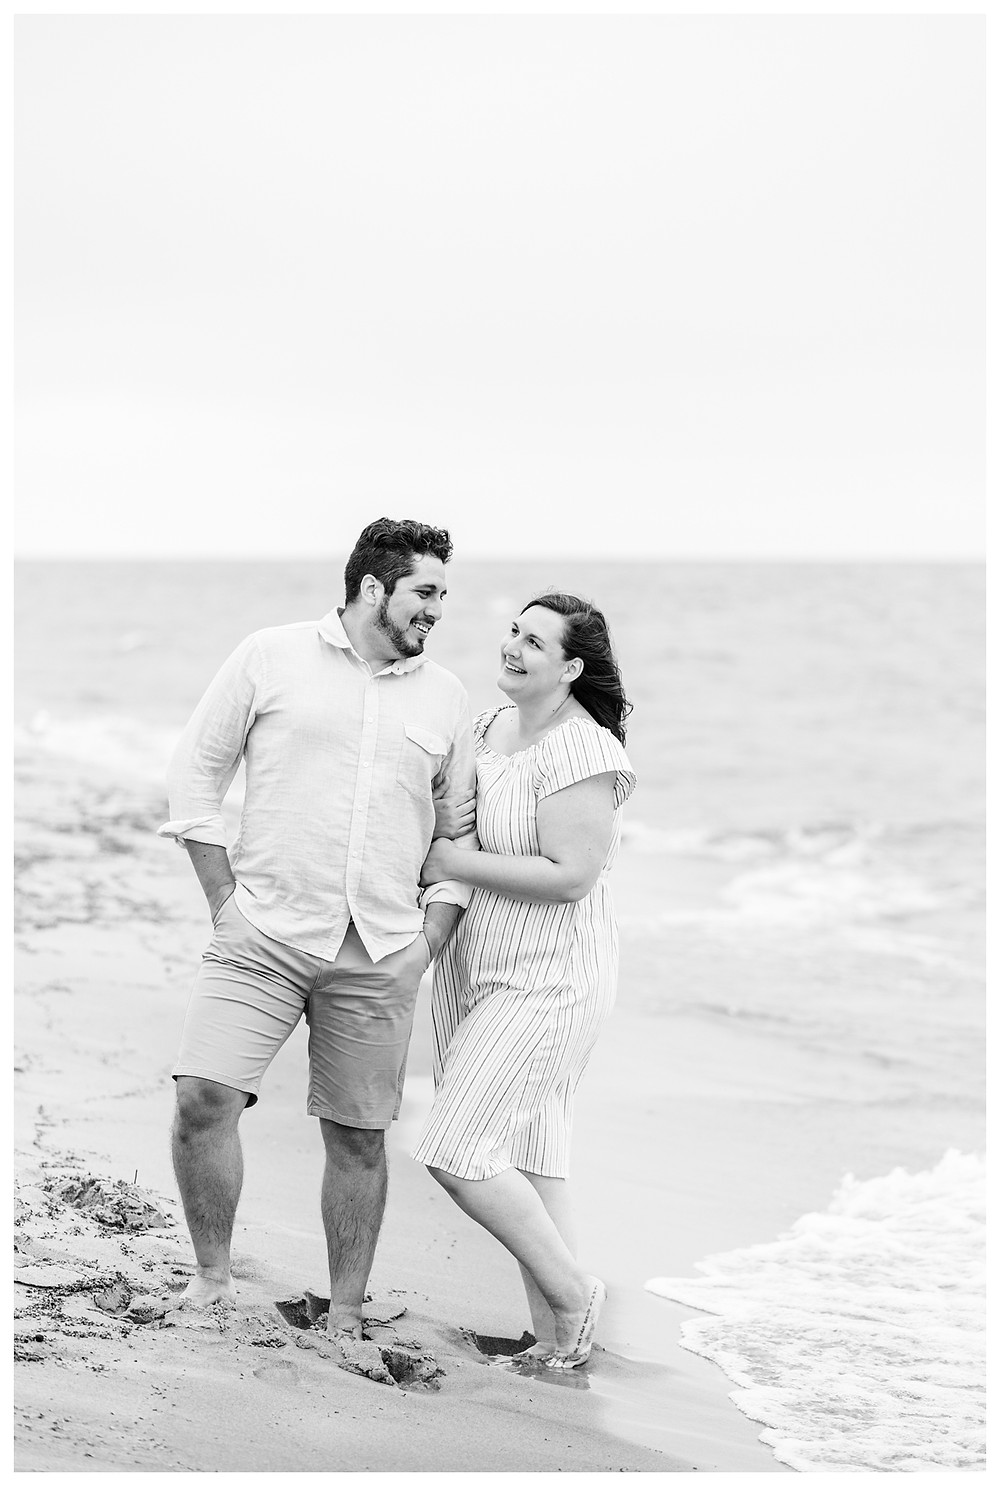 Josh and Andrea light airy joyful style wedding photography husband and wife photographer team michigan pictures photo shoot poses Riley Trails Tunnel Park engagement pictures session photo shoot fiance